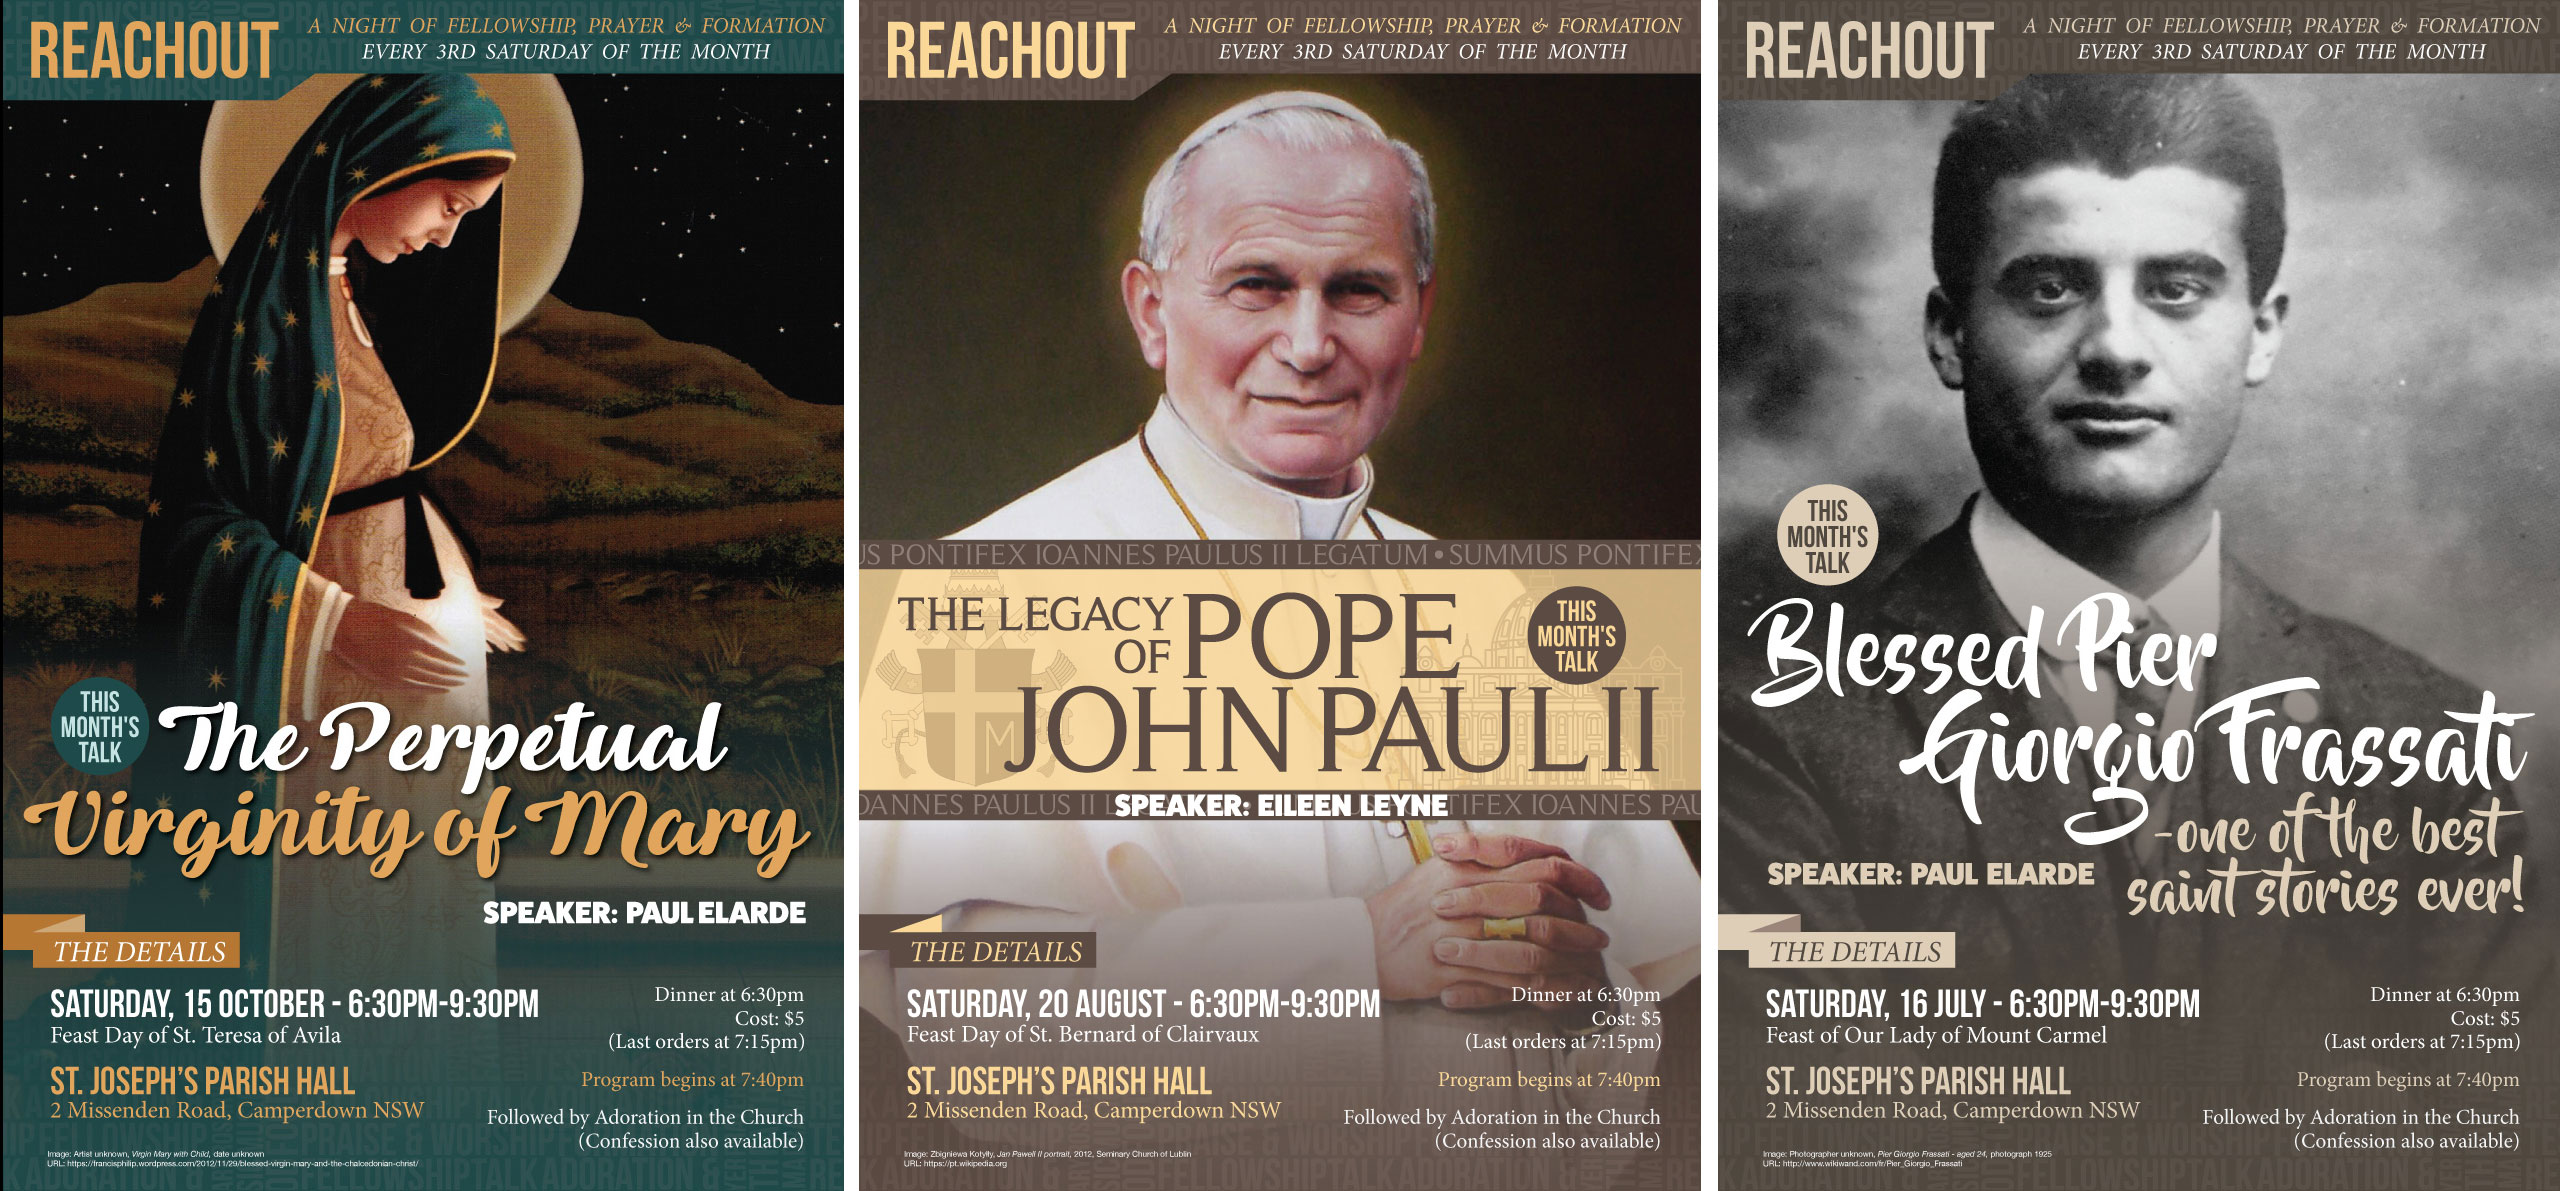 reachout-posters